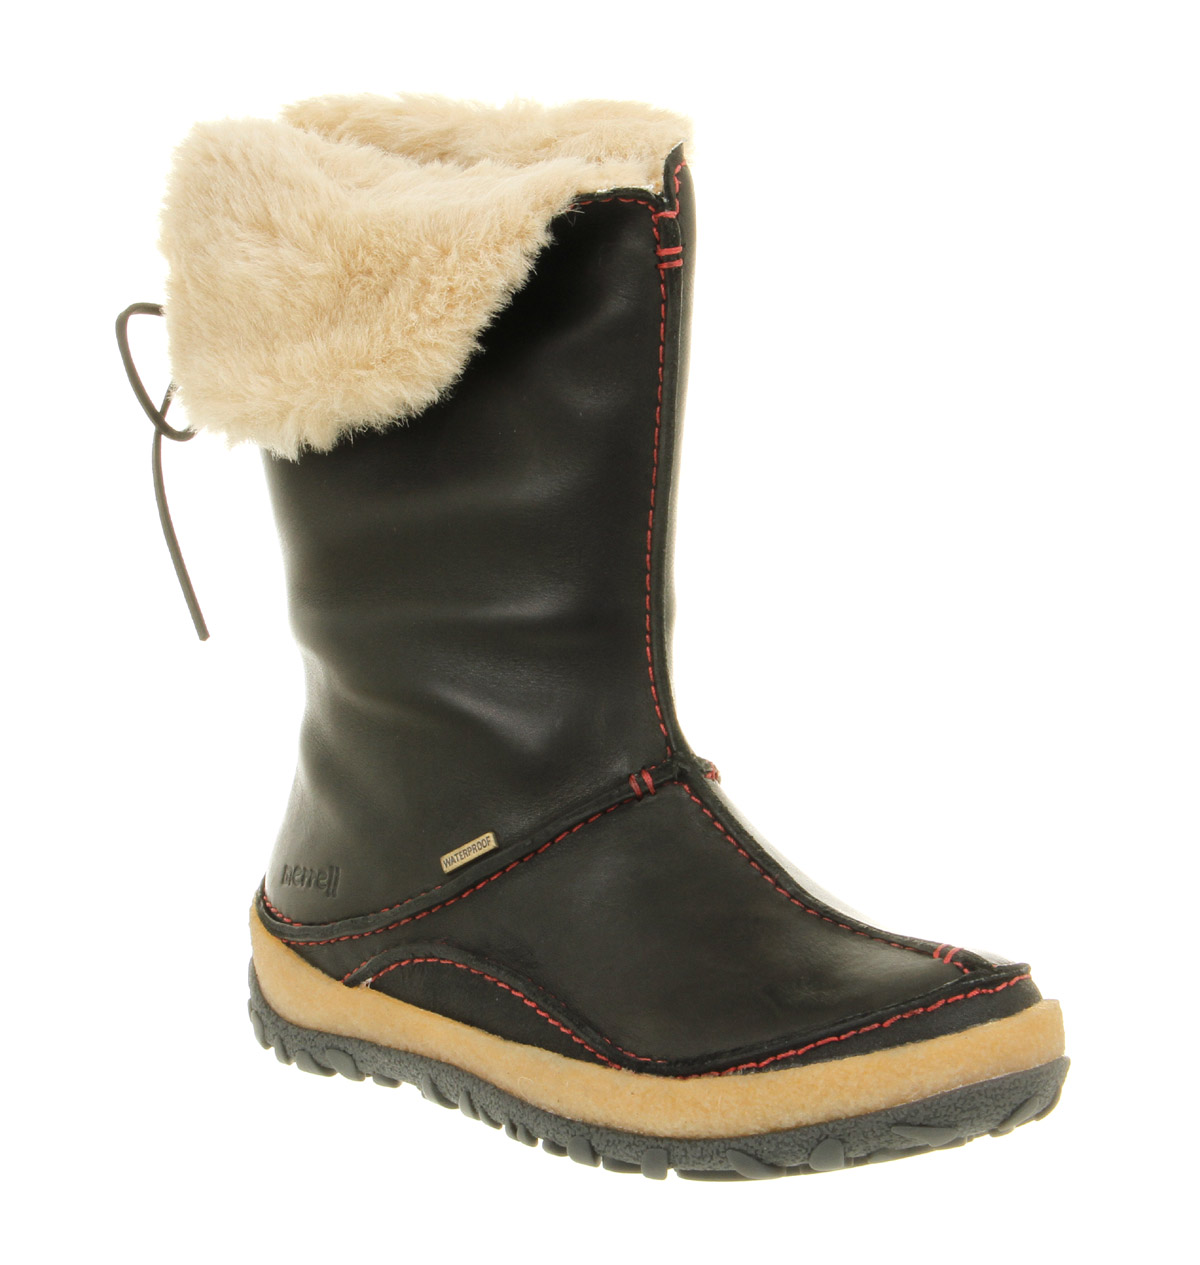 Black Fur Lined Boots Compare Winter Mount Mercy